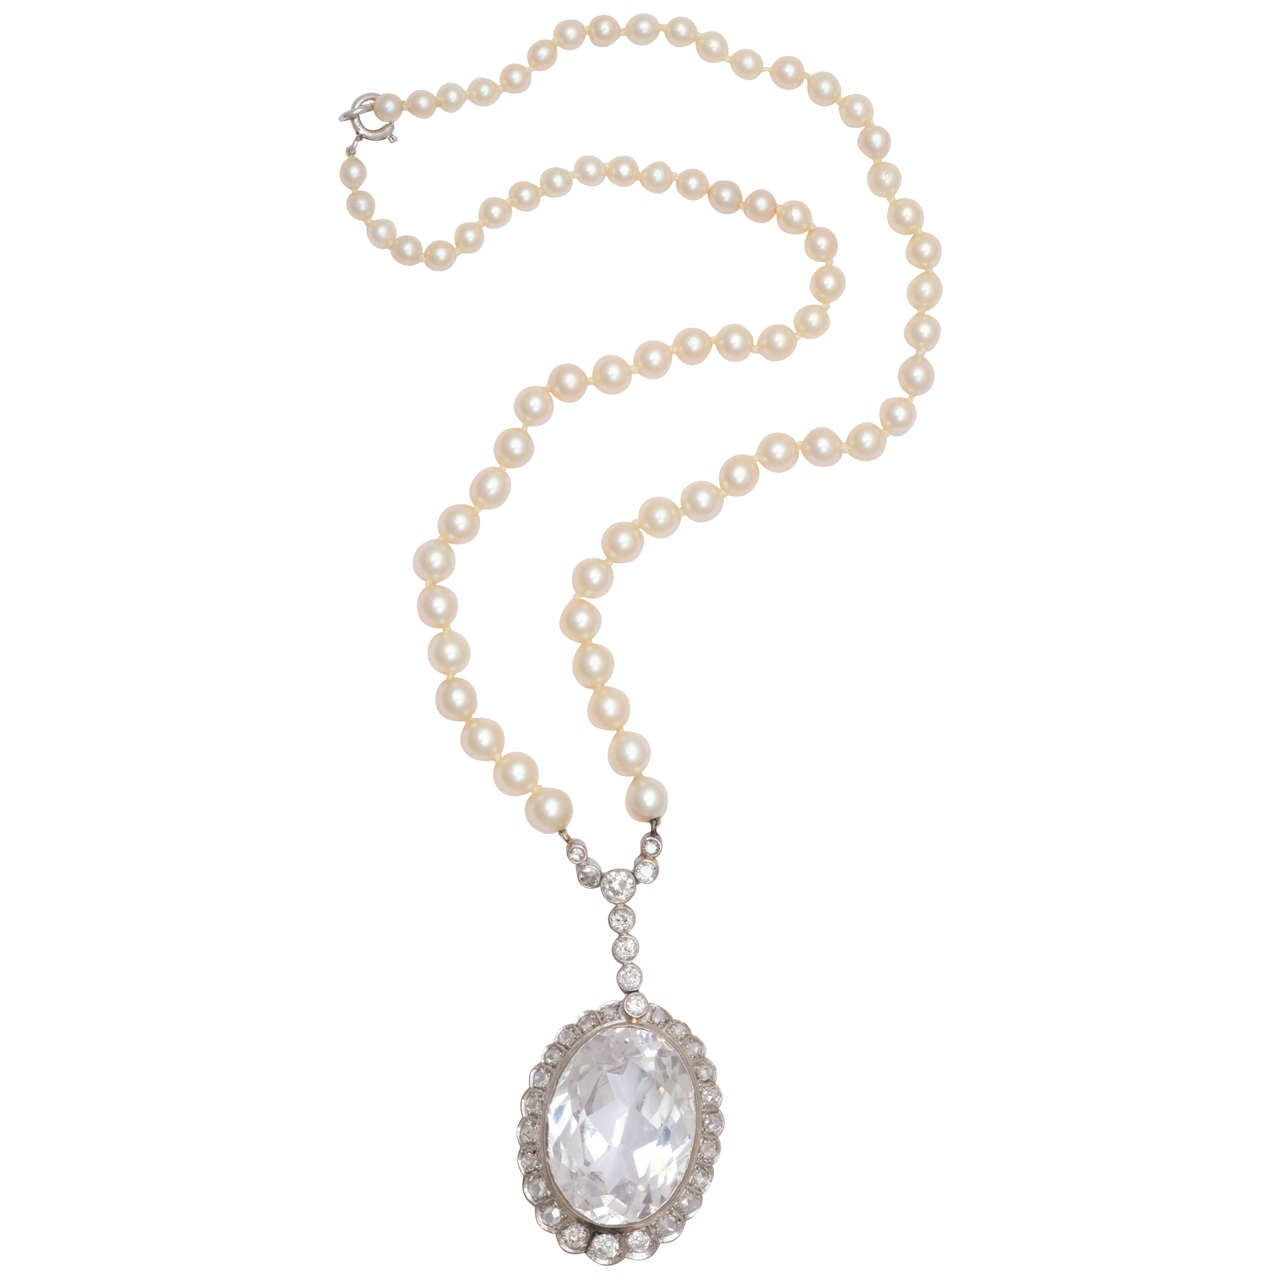 Diamond & Faceted Kunzite Pearl Necklace For Sale